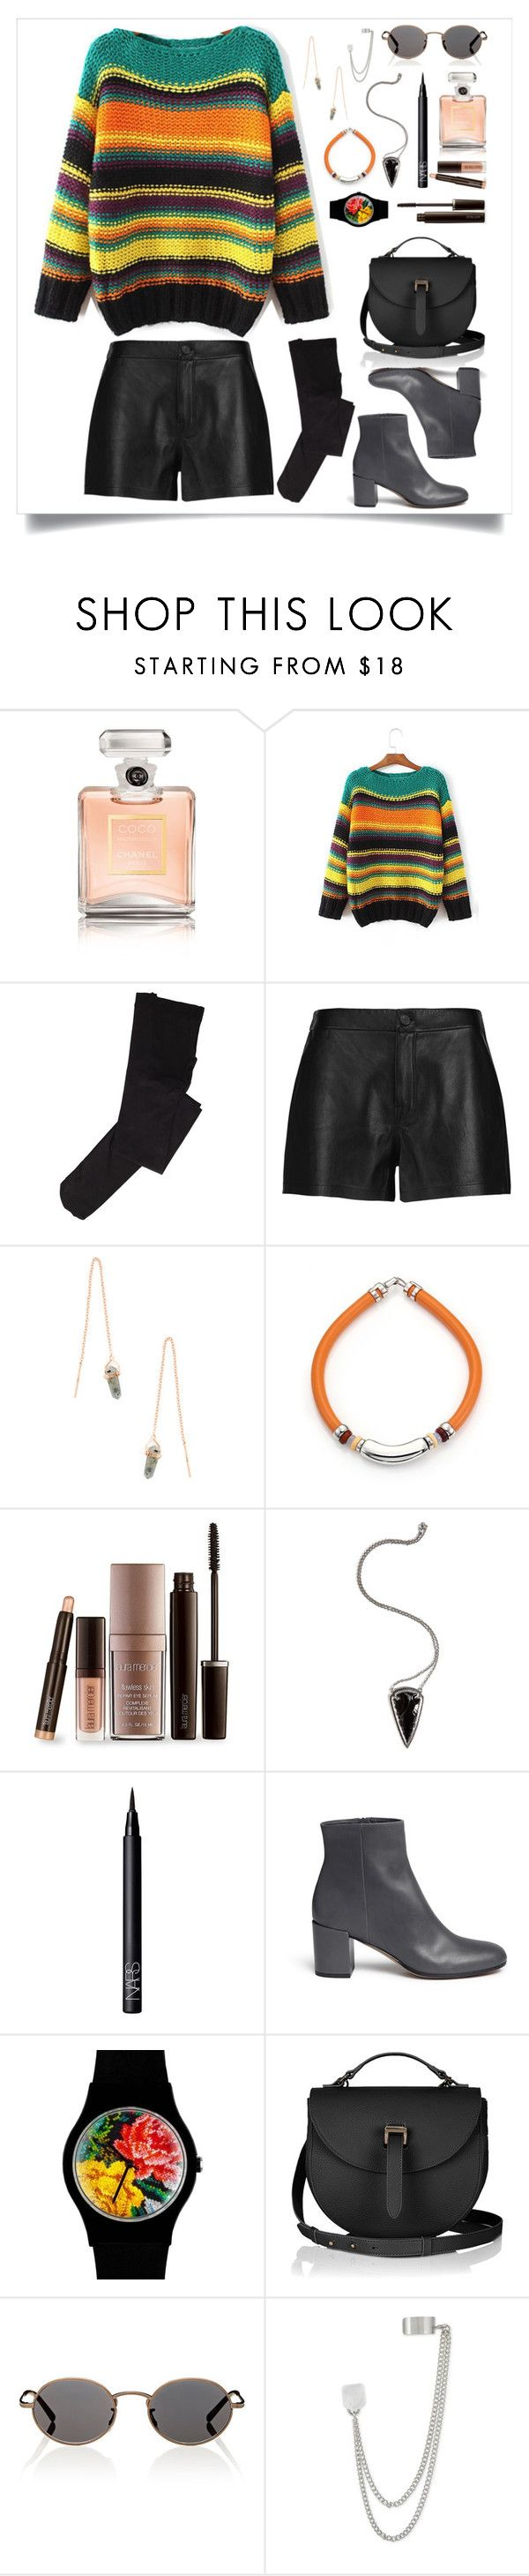 """""""Senza titolo #244"""" by mariaantonietta8 ❤ liked on Polyvore featuring Chanel, J Brand, Shashi, Lizzie Fortunato, Laura Mercier, Pamela Love, NARS Cosmetics, Vince, May28th and Oliver Peoples"""